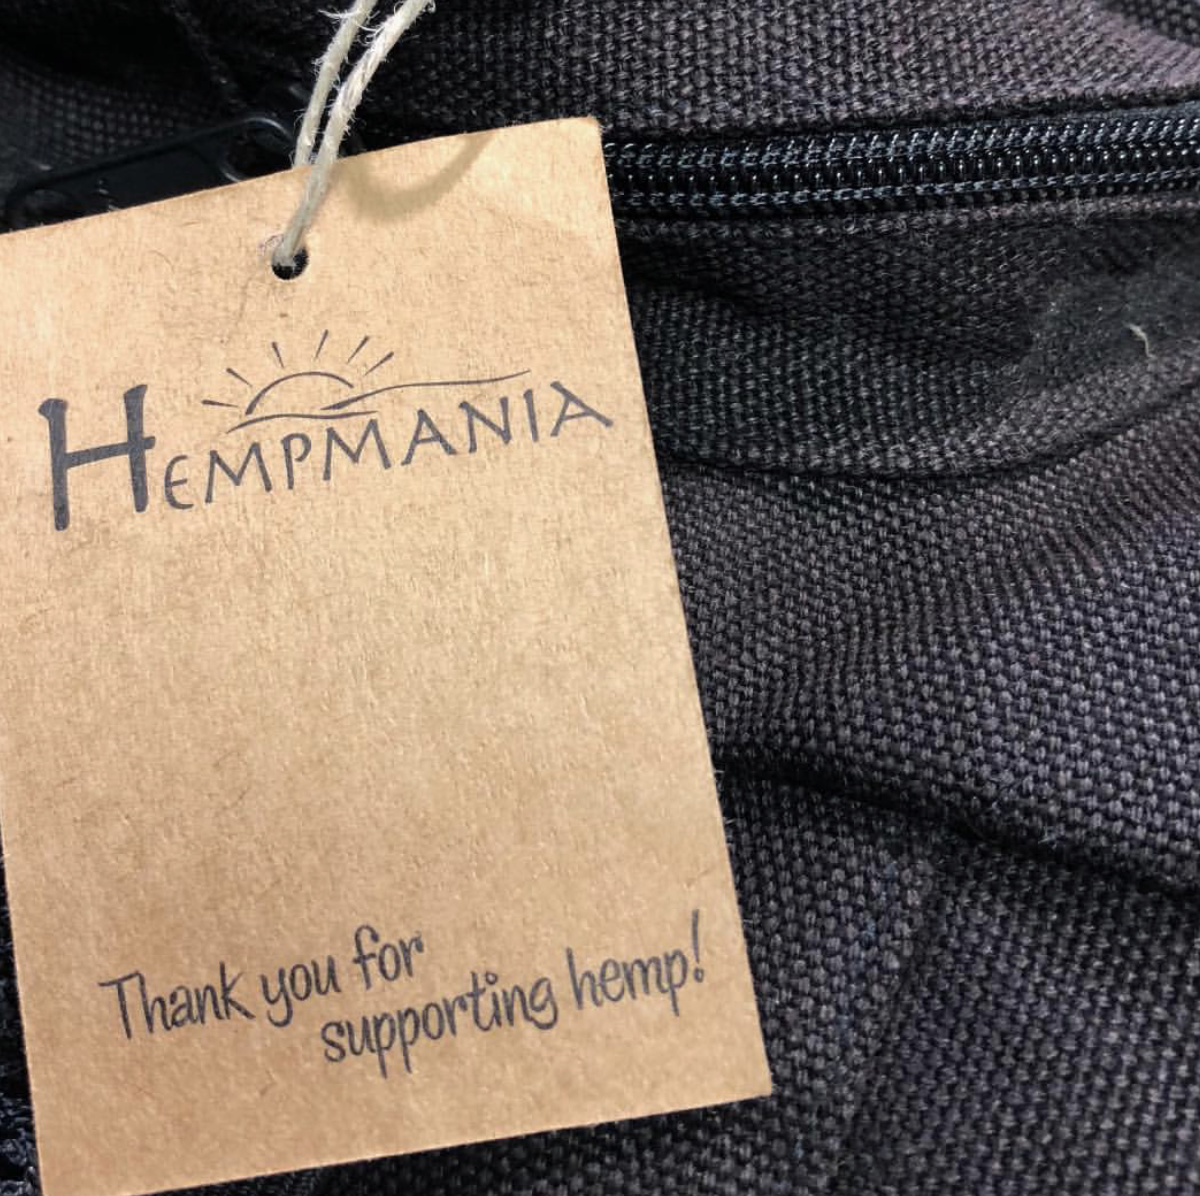 About HempMania - Since 1997 Hempmania has created an extensive line of high quality, earth-friendly hemp products including hemp bags, hemp backpacks, hemp wallets and a wide range of hemp accessories. We focus on creating the line in a socially responsible way in adherence to fair-trade practices and principles. All of our hemp bags and accessories are manufactured in the highlands of Guatemala by an indigenous Mayan family business. Our company is constantly creating new hemp products for our hemp retail and hemp wholesale customers.